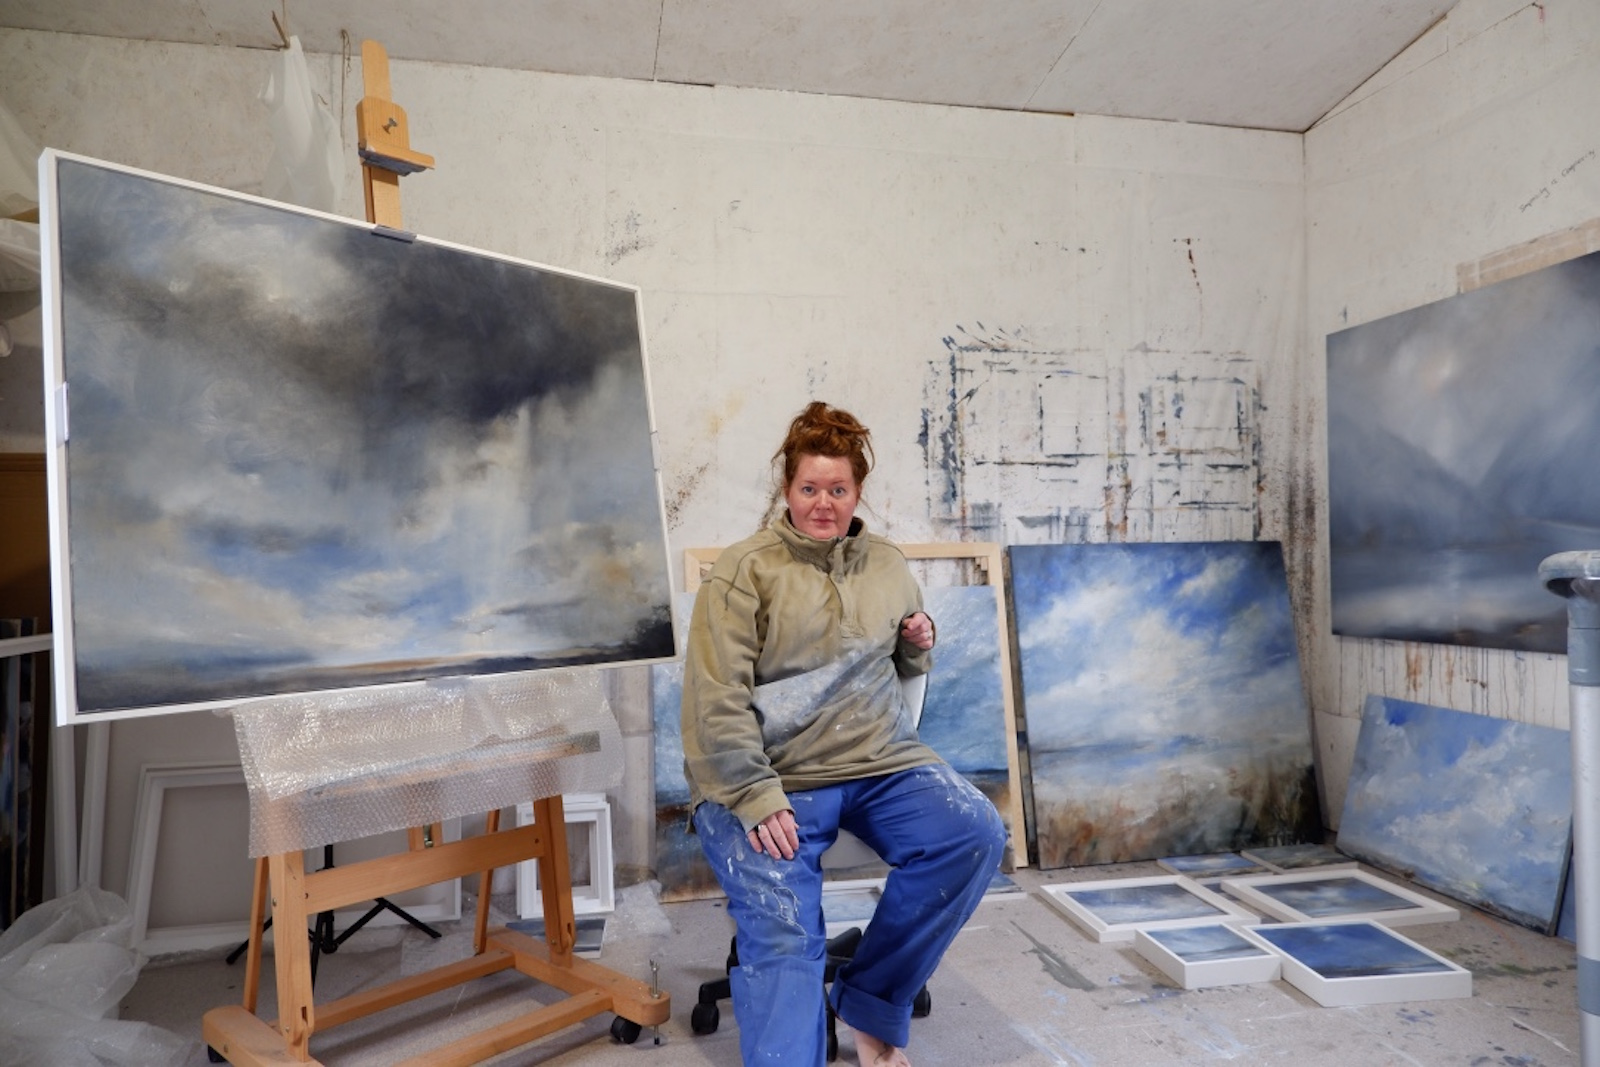 landscape painter hoping to find new colours for paint making